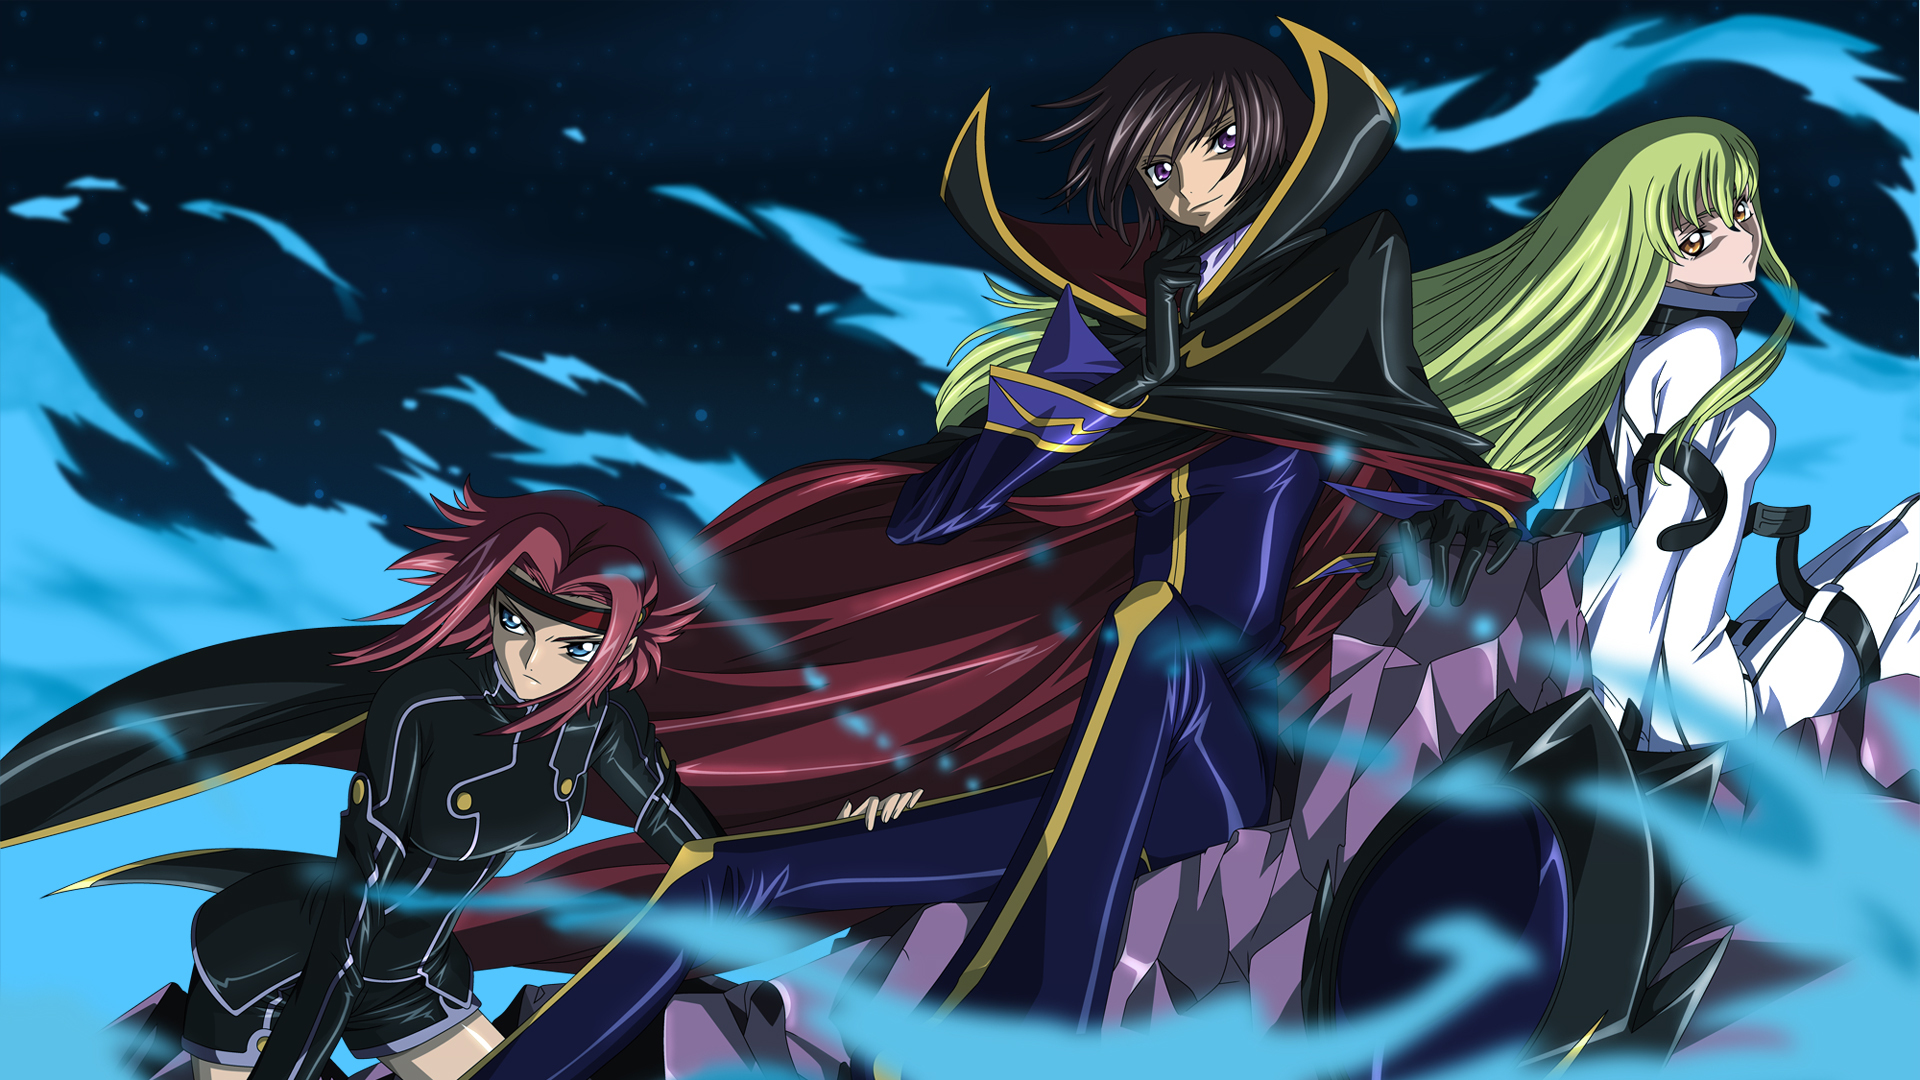 76 Code Geass Wallpapers On Wallpapersafari